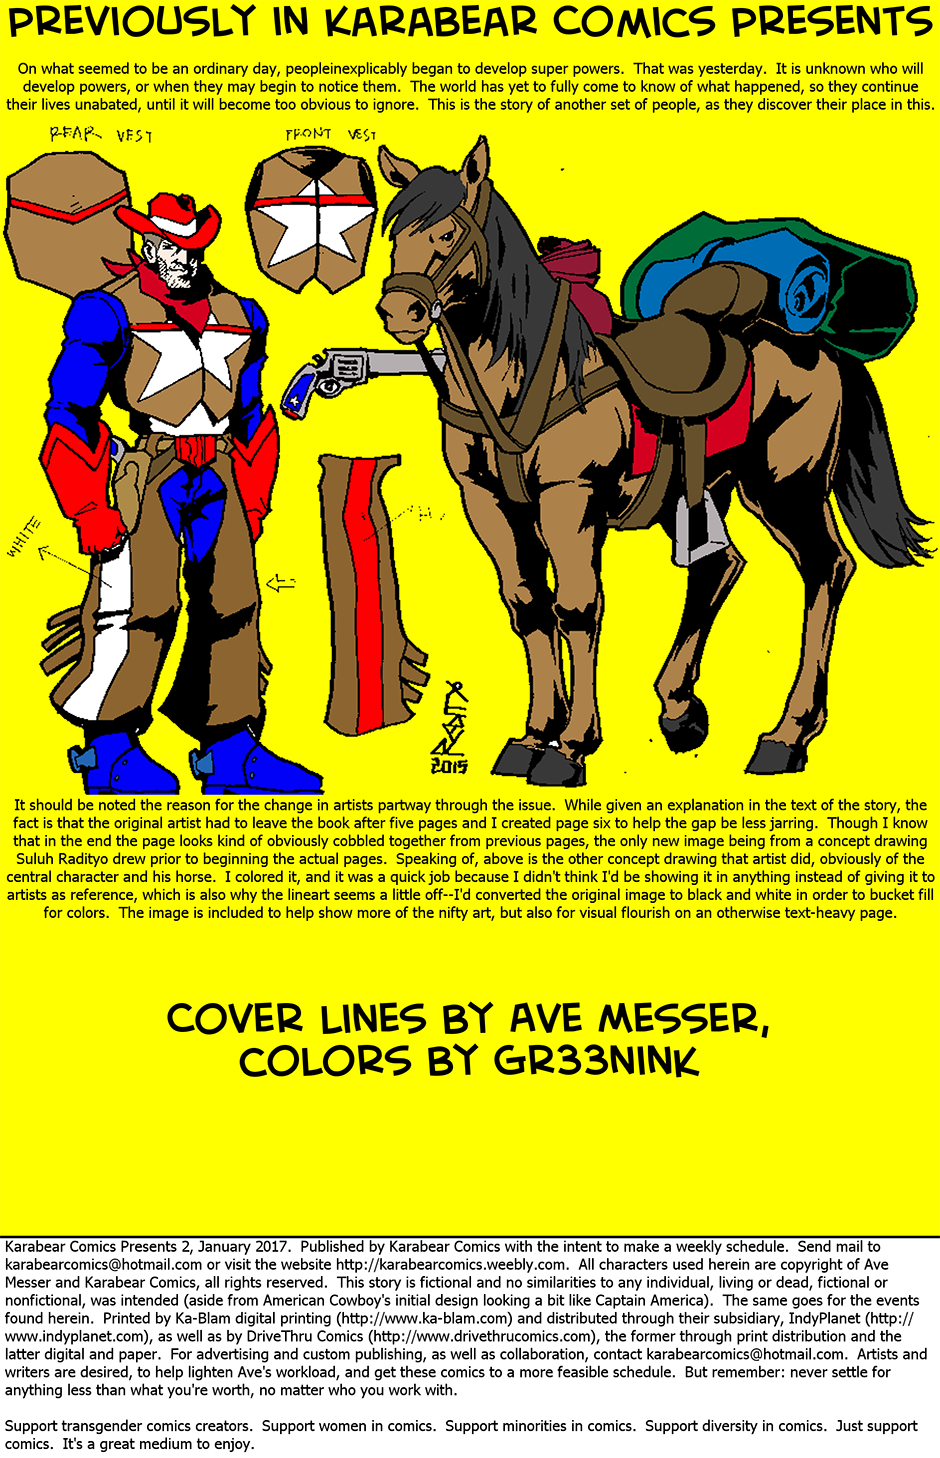 Issue 2: American Cowboy - Inside cover